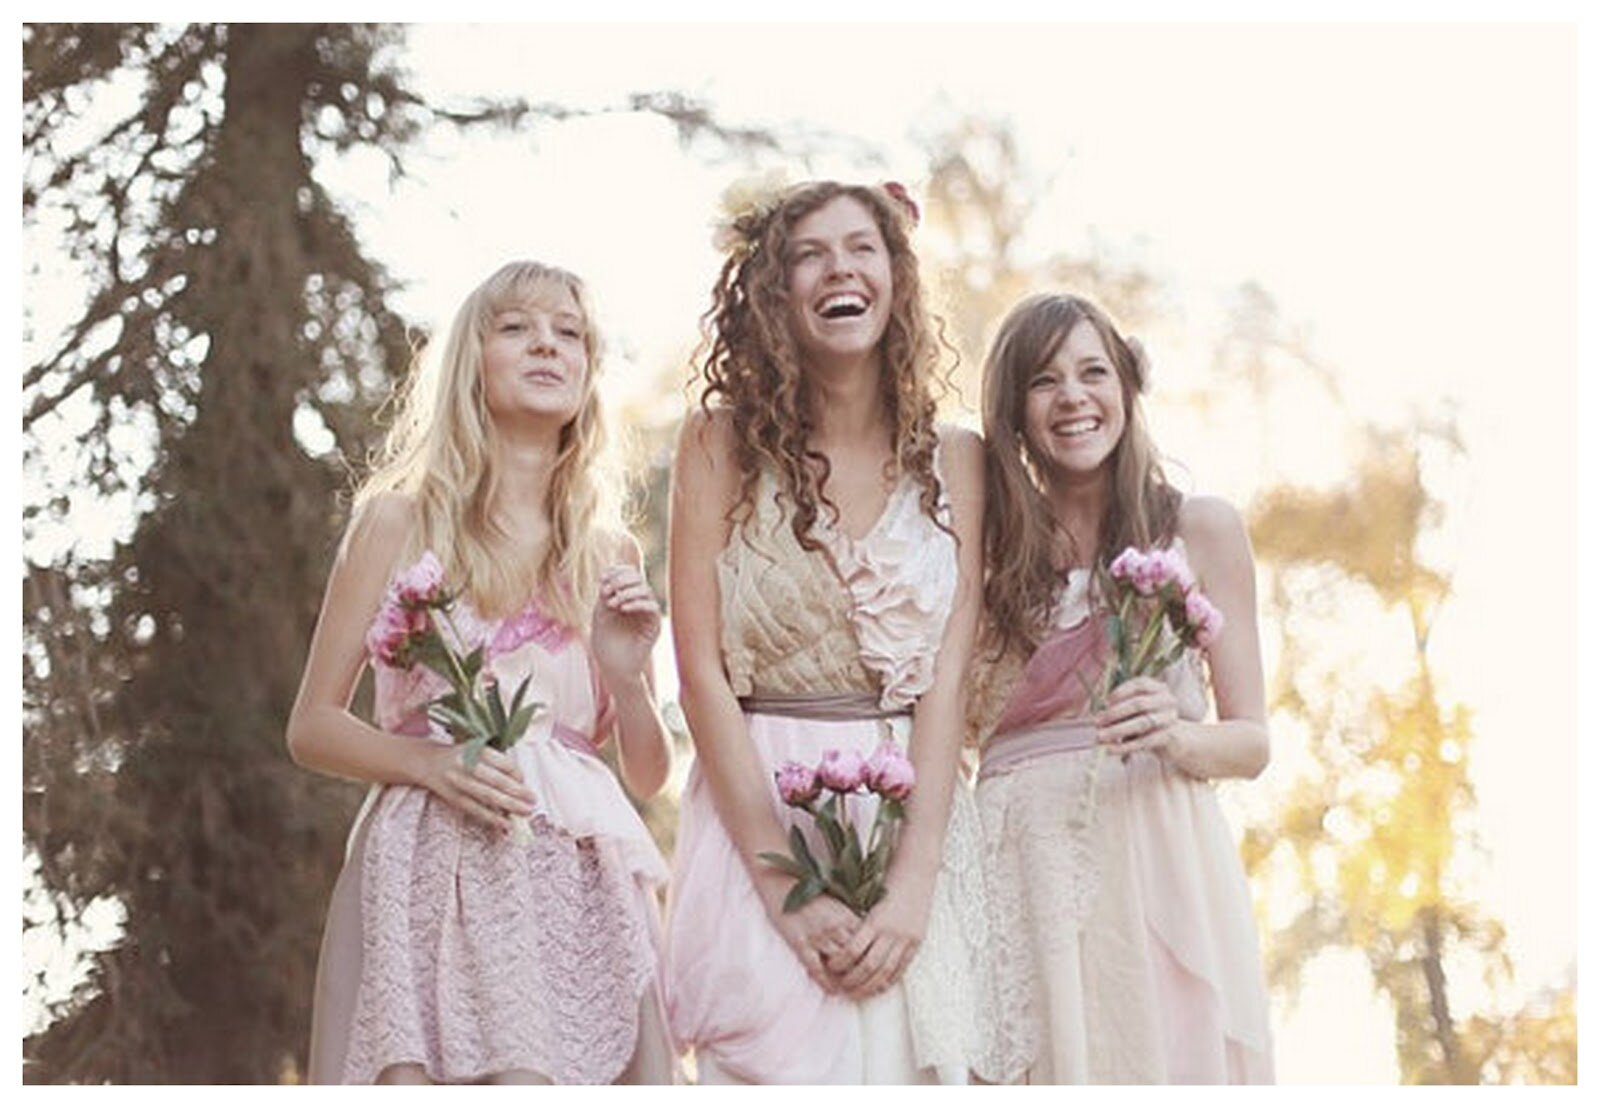 Vintage wedding bridesmaid dresses pictures ideas guide to vintage wedding bridesmaid dresses photo 2 ombrellifo Image collections